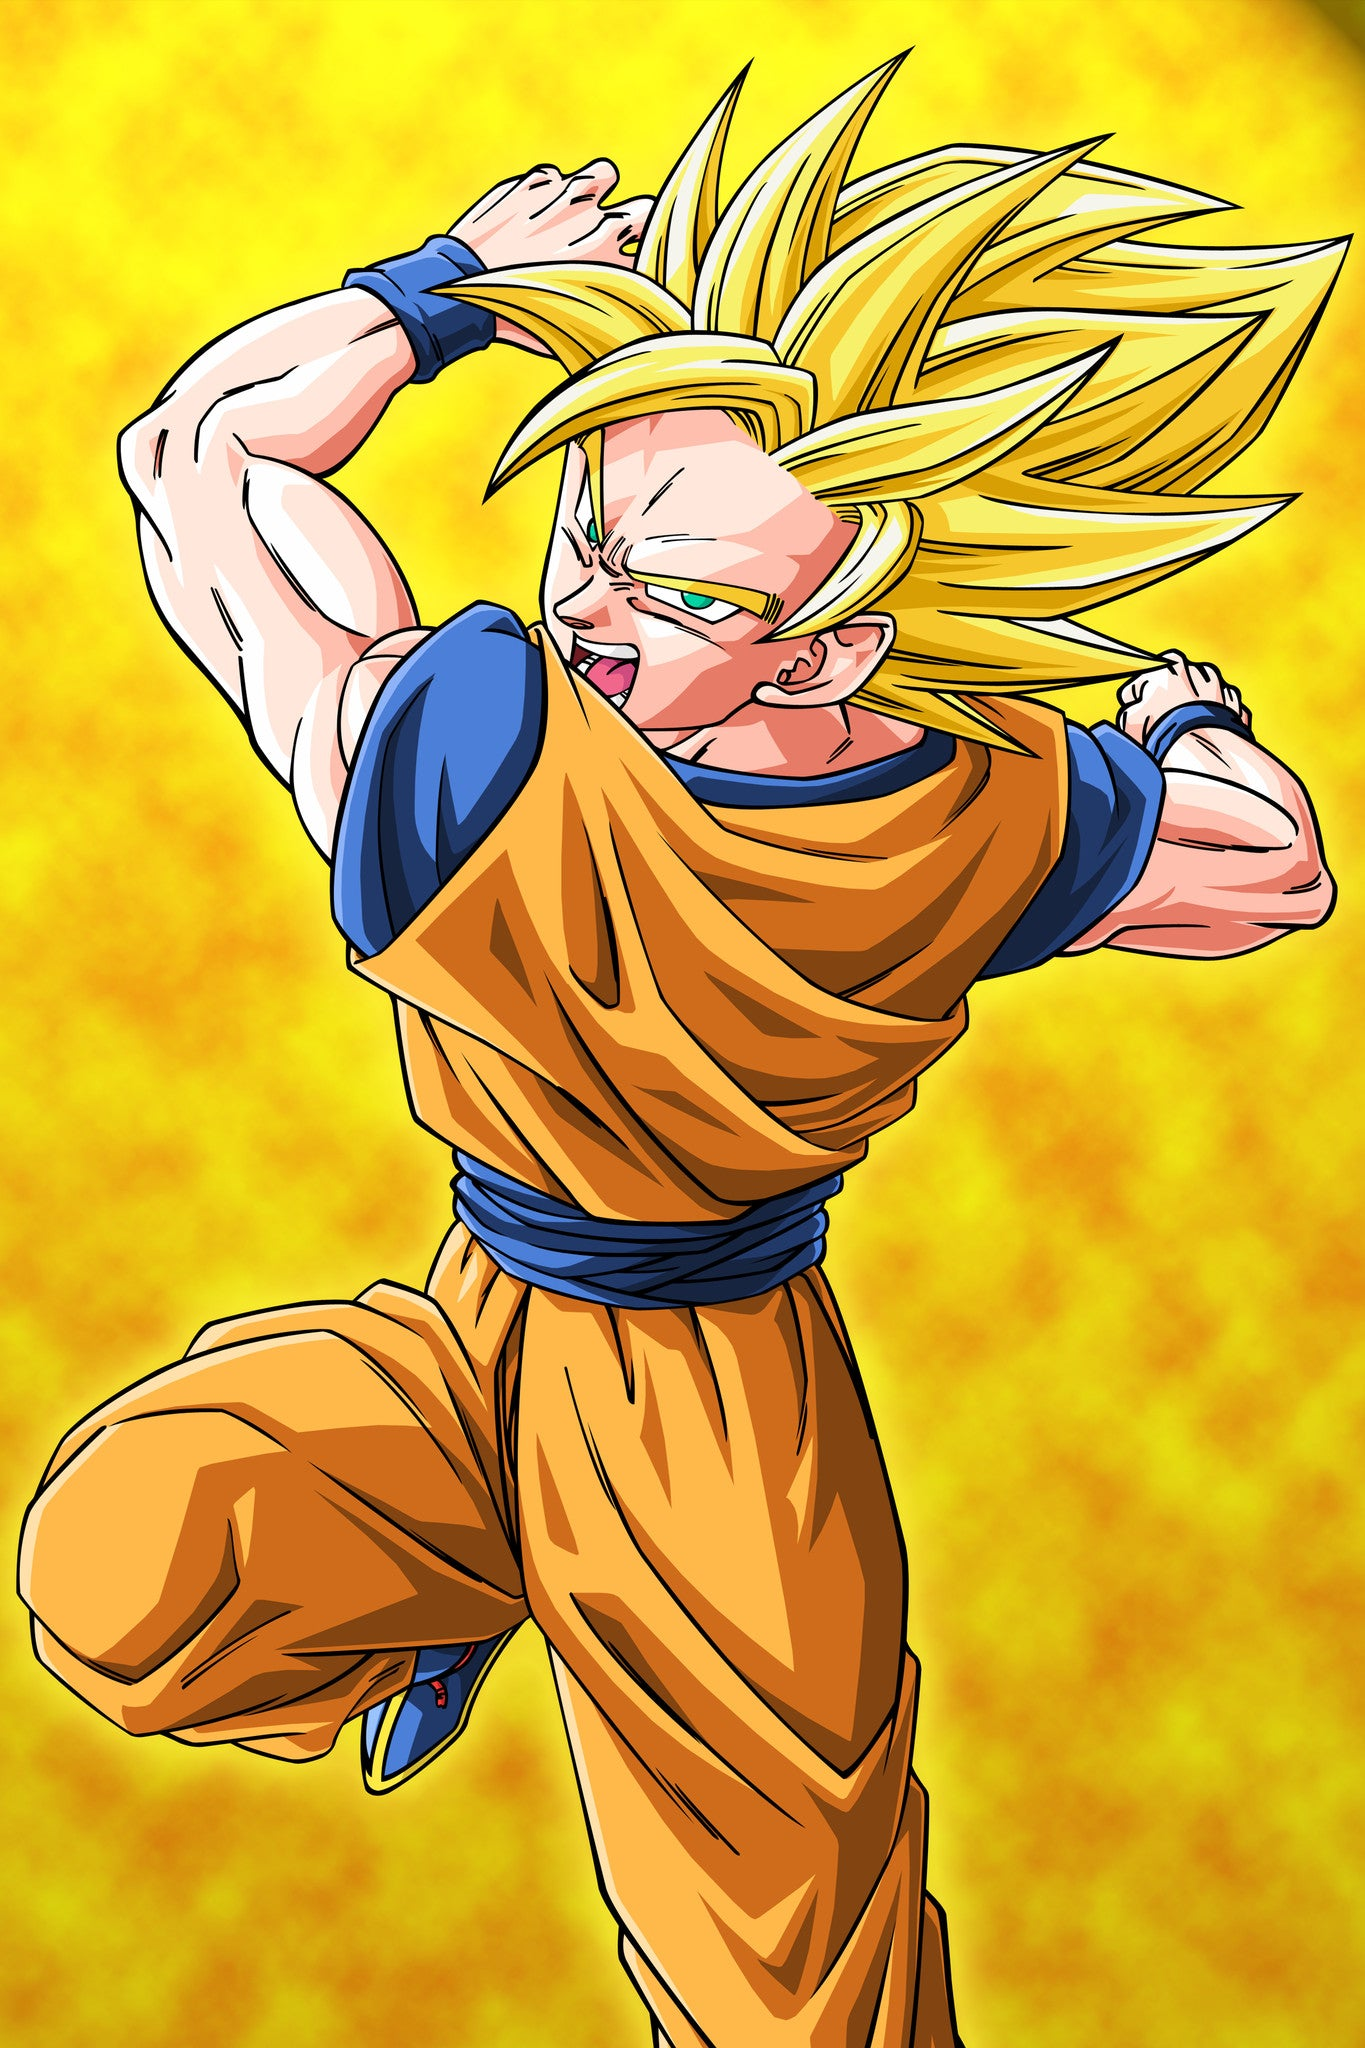 Dragon ball z silly punter anime dargon ball z goku super saiyan 2 poster in india by sillypunter thecheapjerseys Choice Image